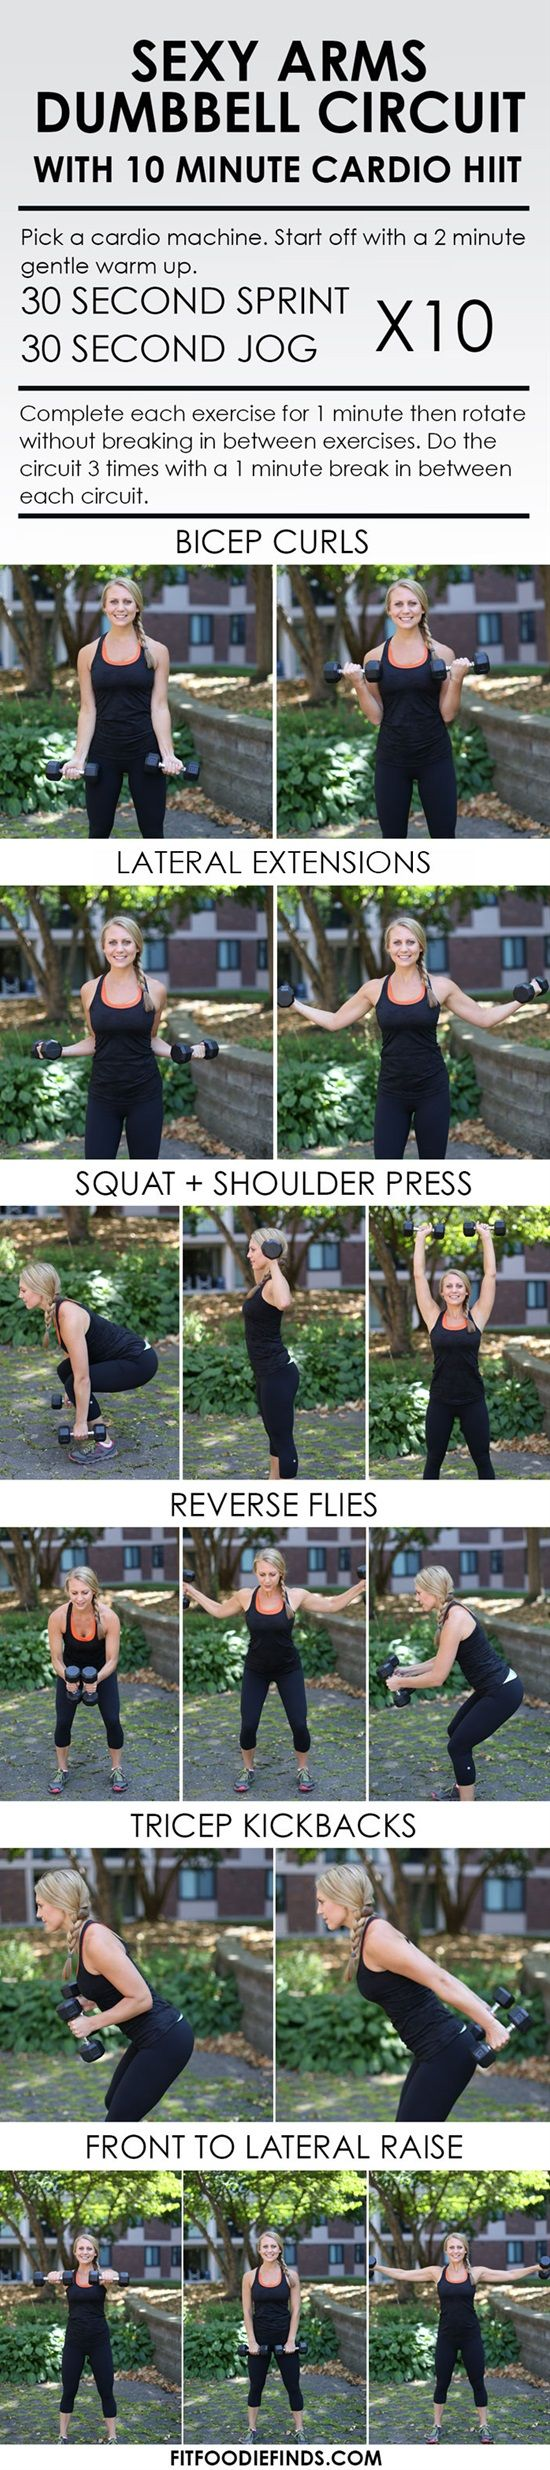 10-Minute Sexy Arms Dumbbell Circuit Workout